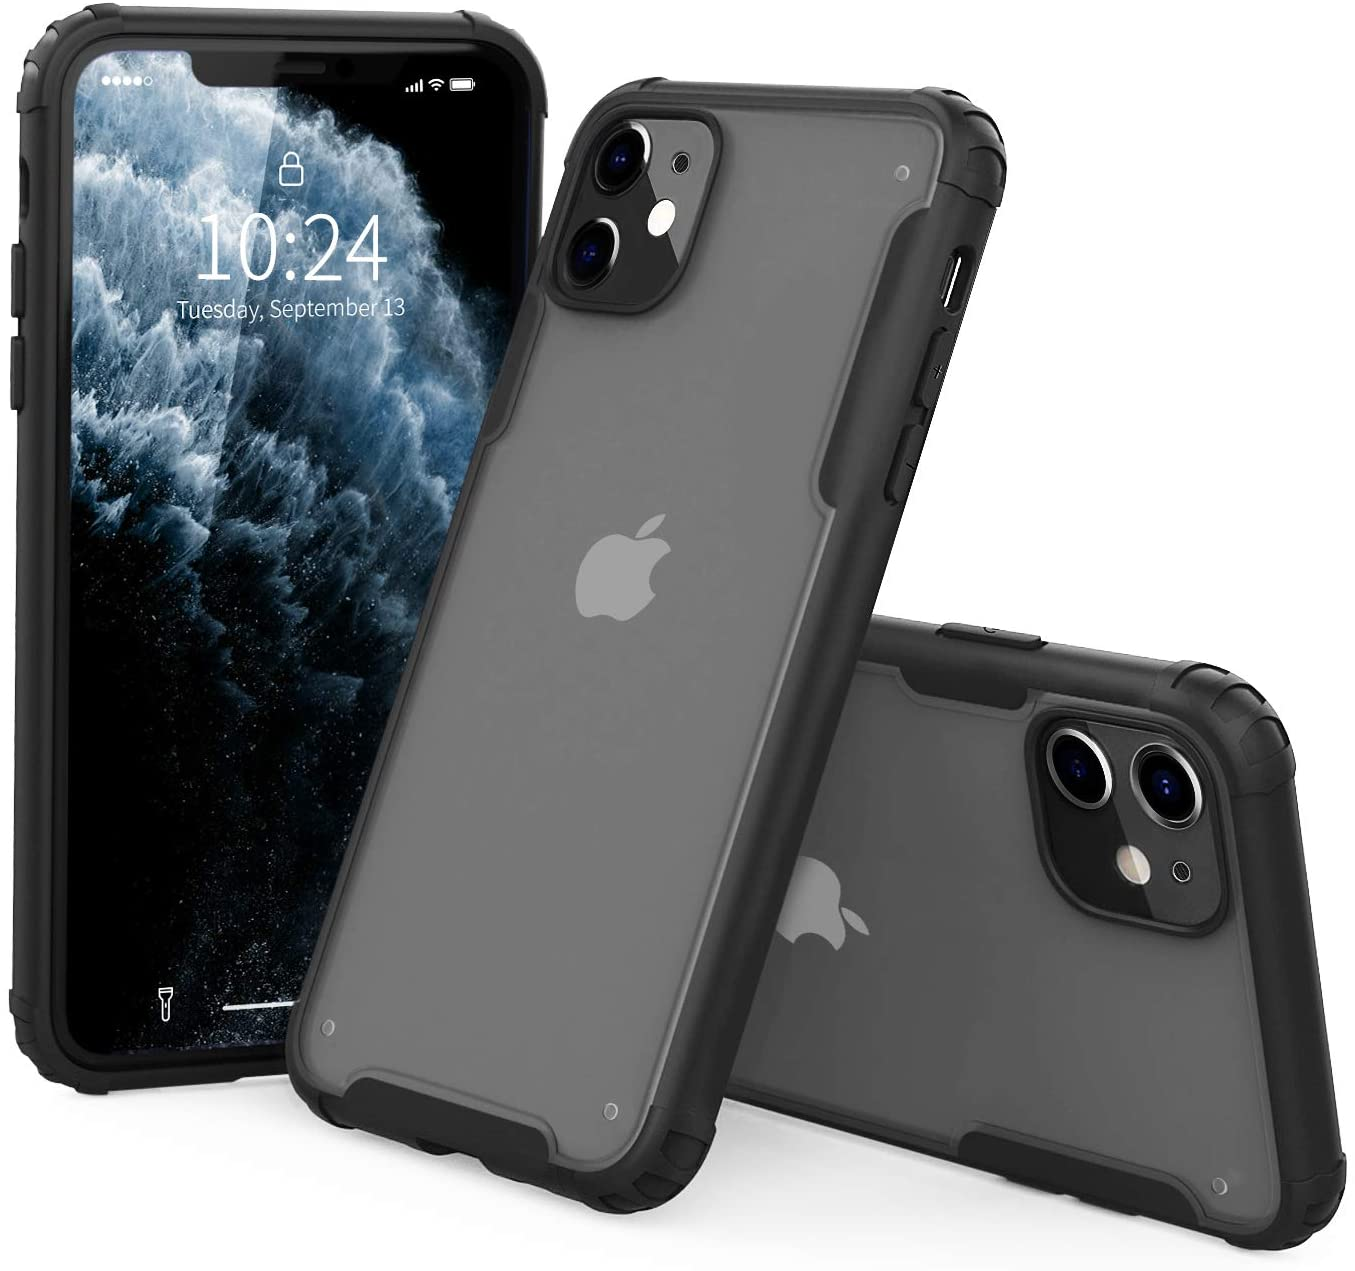 I STRIVE Heavy Duty Military Grade iPhone 11 Case -Matte Translucent - Phone Armor - Shock/Shatterproof - Slim - Hybrid Materials - Wireless Charging - Compatible with iPhone 11 6.1